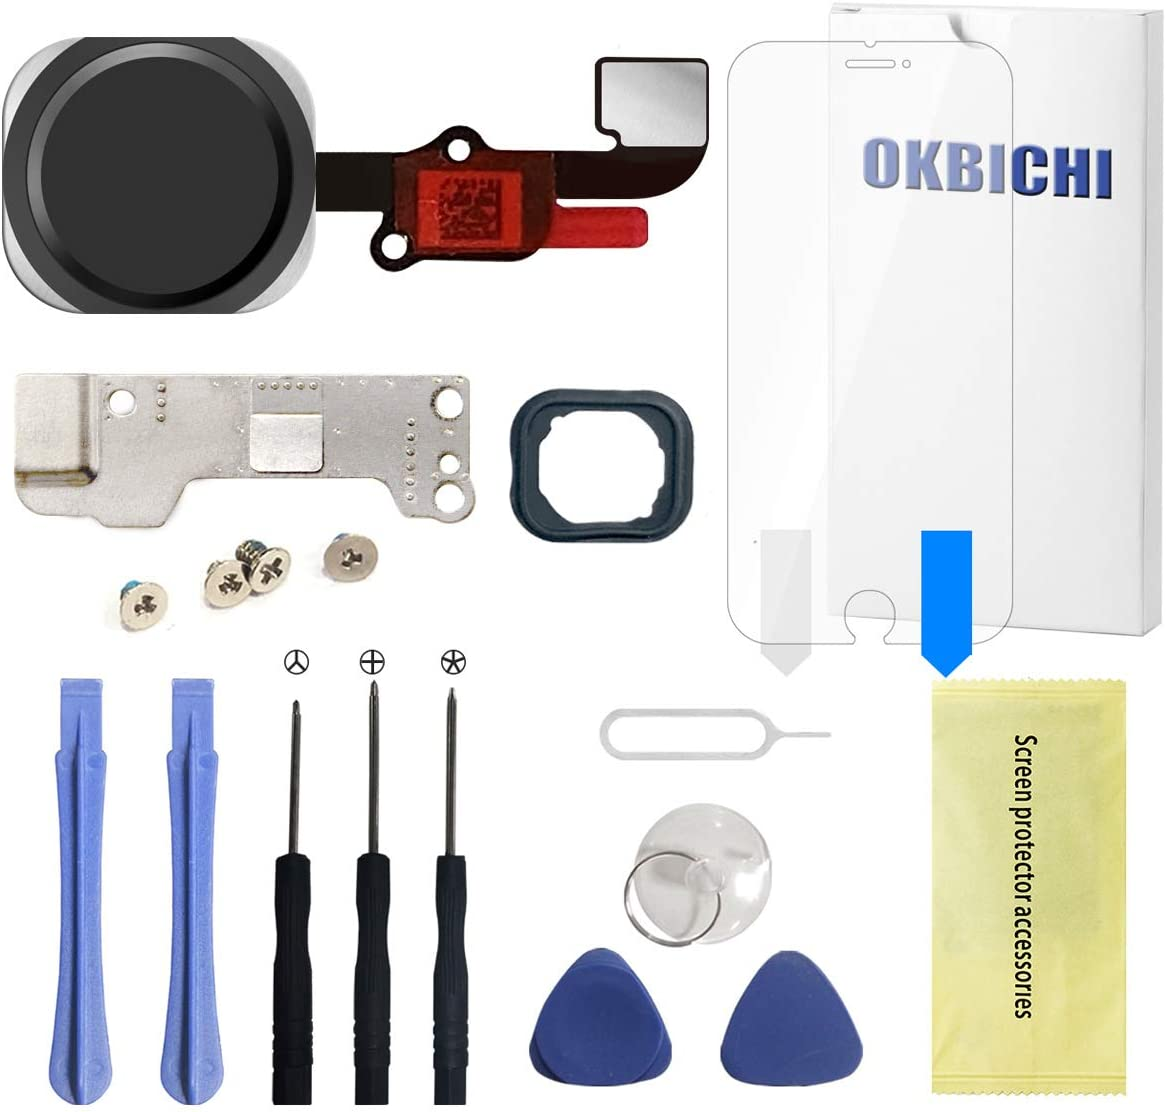 OKBICHI Home Button for iPhone 6s/6s Plus(Black) Main Key Flex Cable Assembly Replacement - Repair Tools with Screen Protector